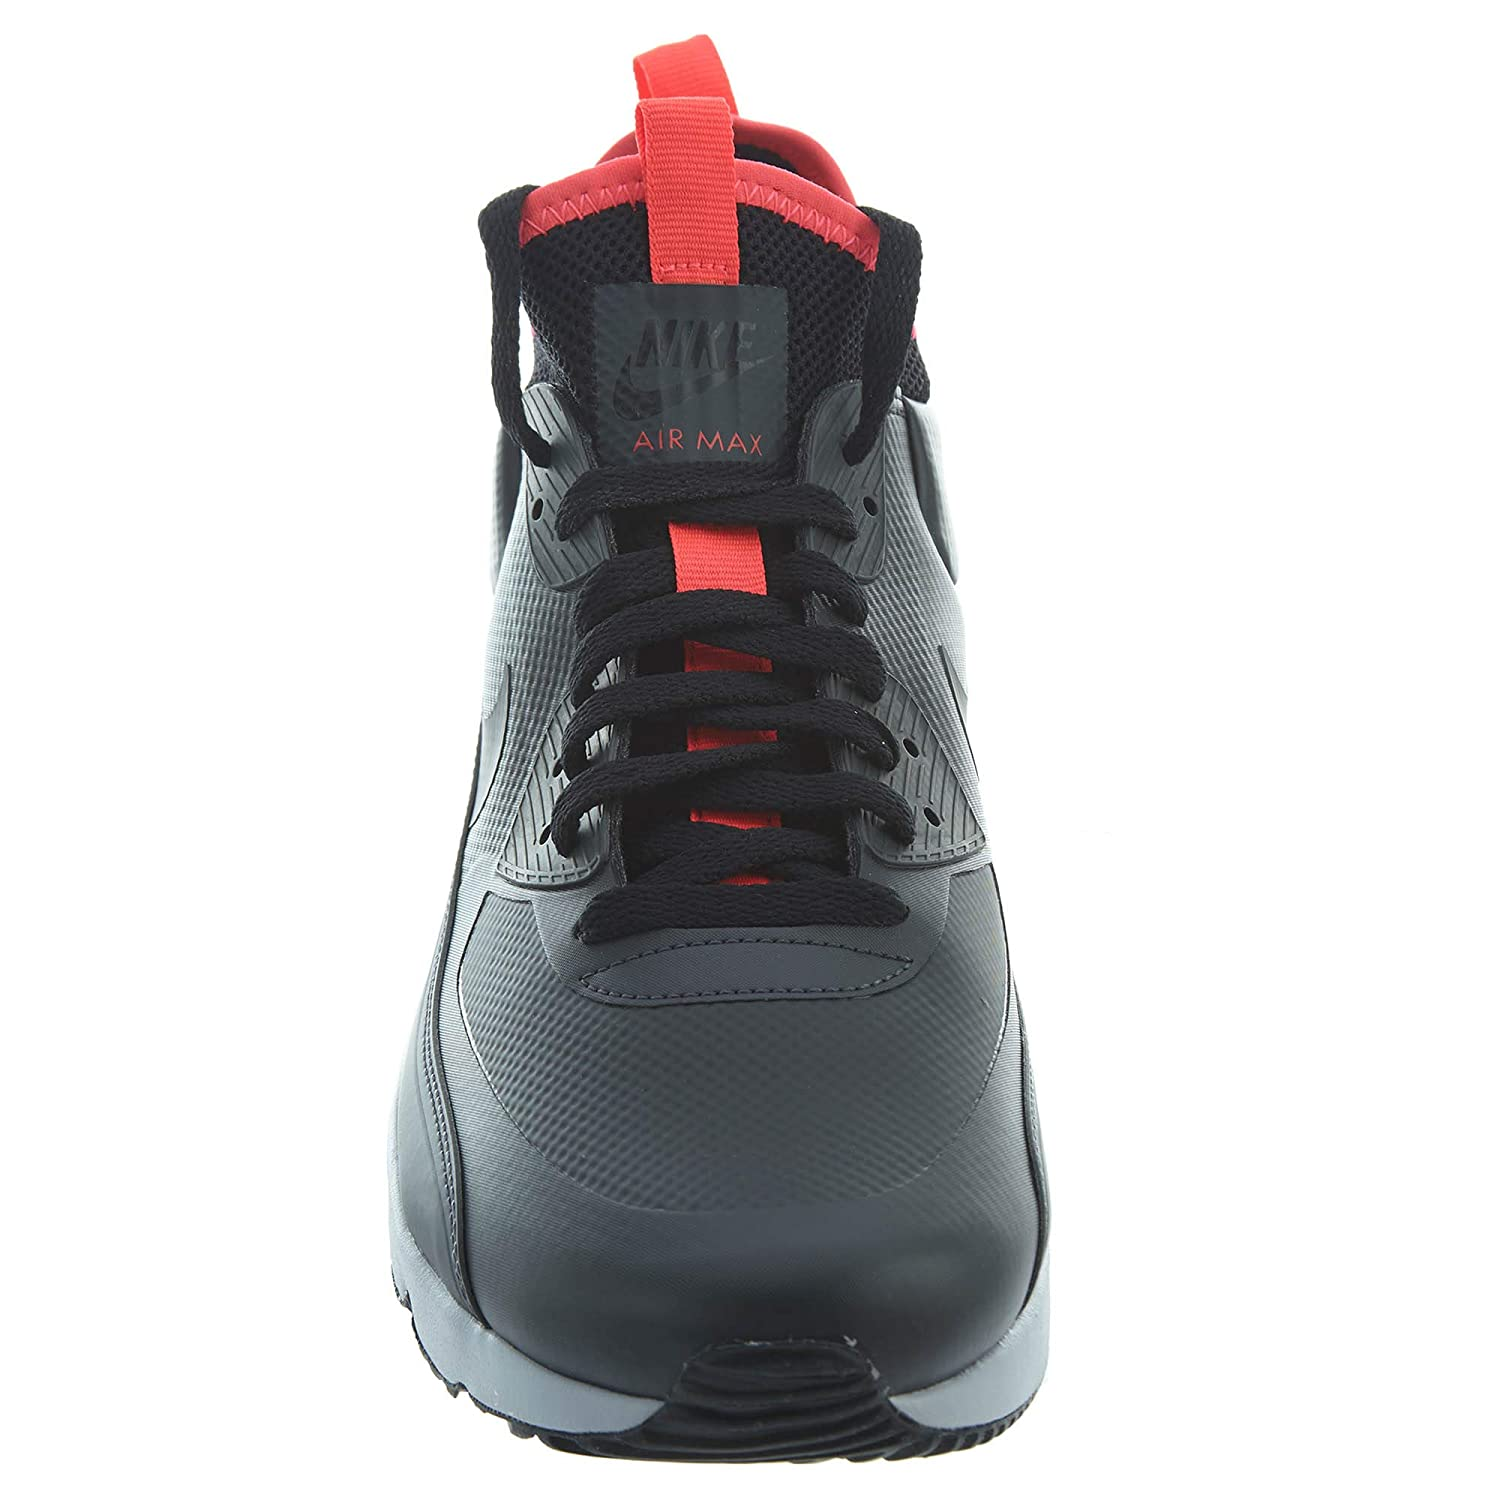 buy online 90869 484fd Amazon.com   Nike Mens Air Max 90 Ultra Mid Winter Sneakerboot   Fashion  Sneakers